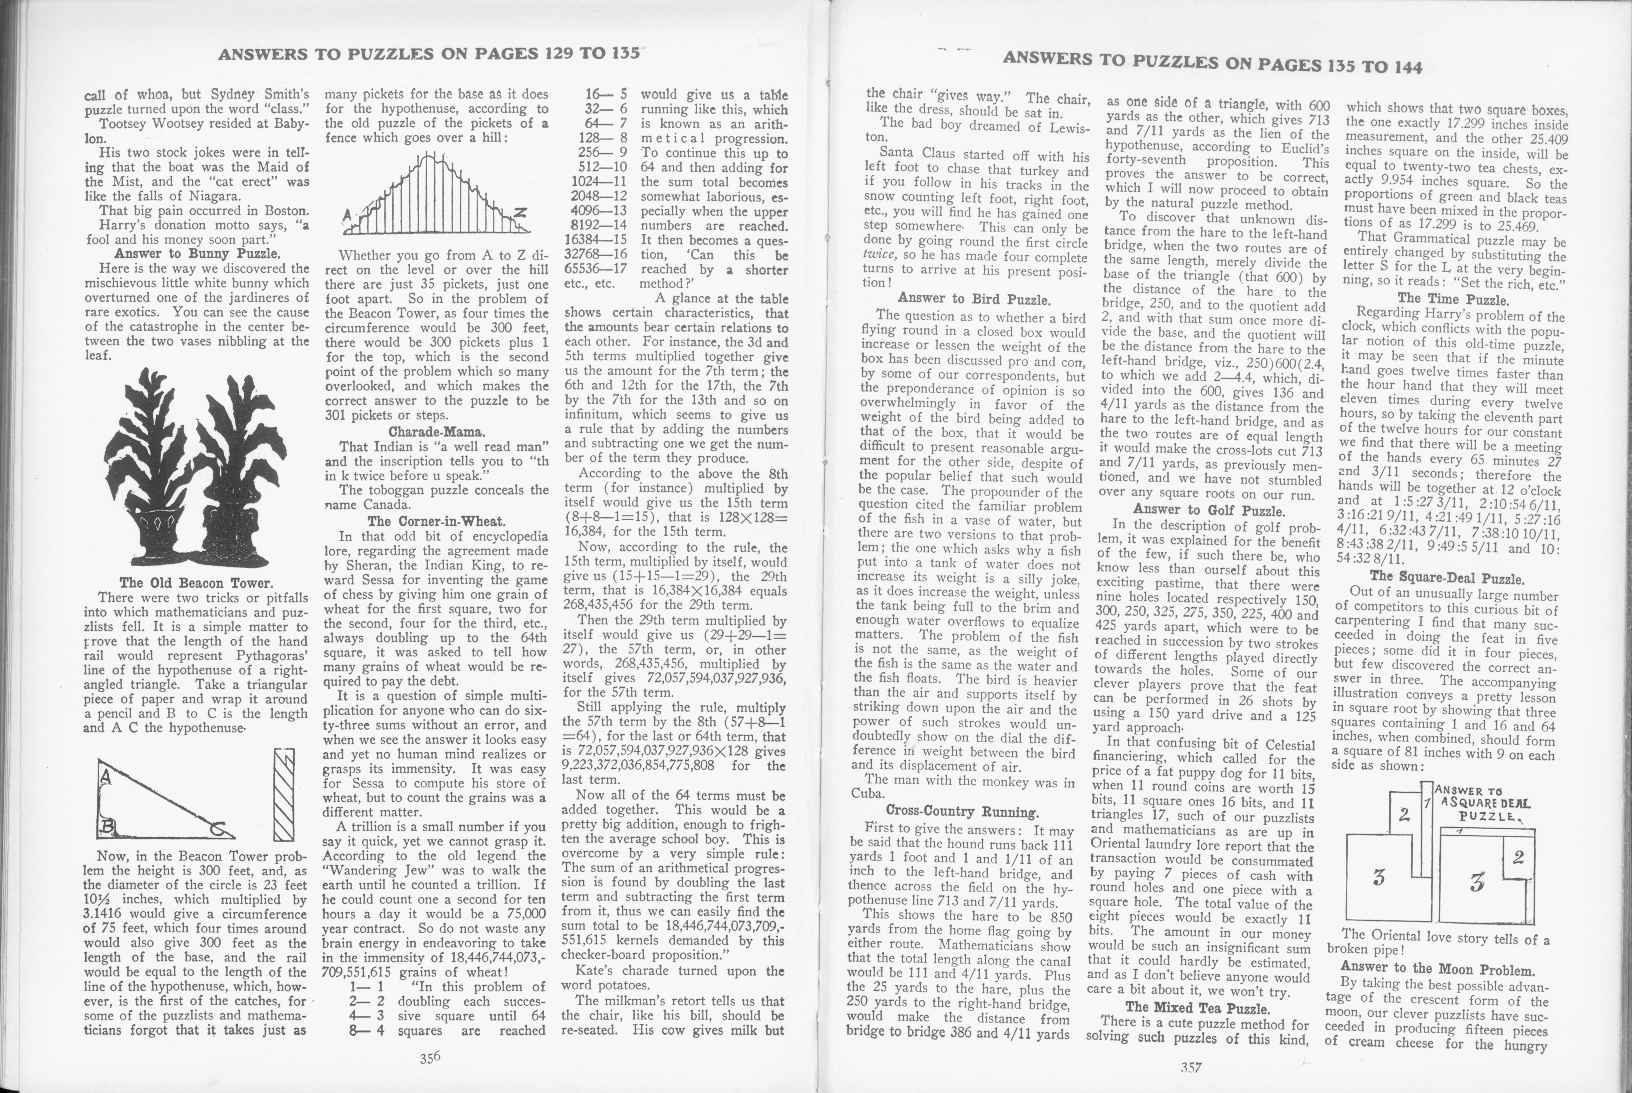 Sam Loyd - Cyclopedia of Puzzles - page 356-357